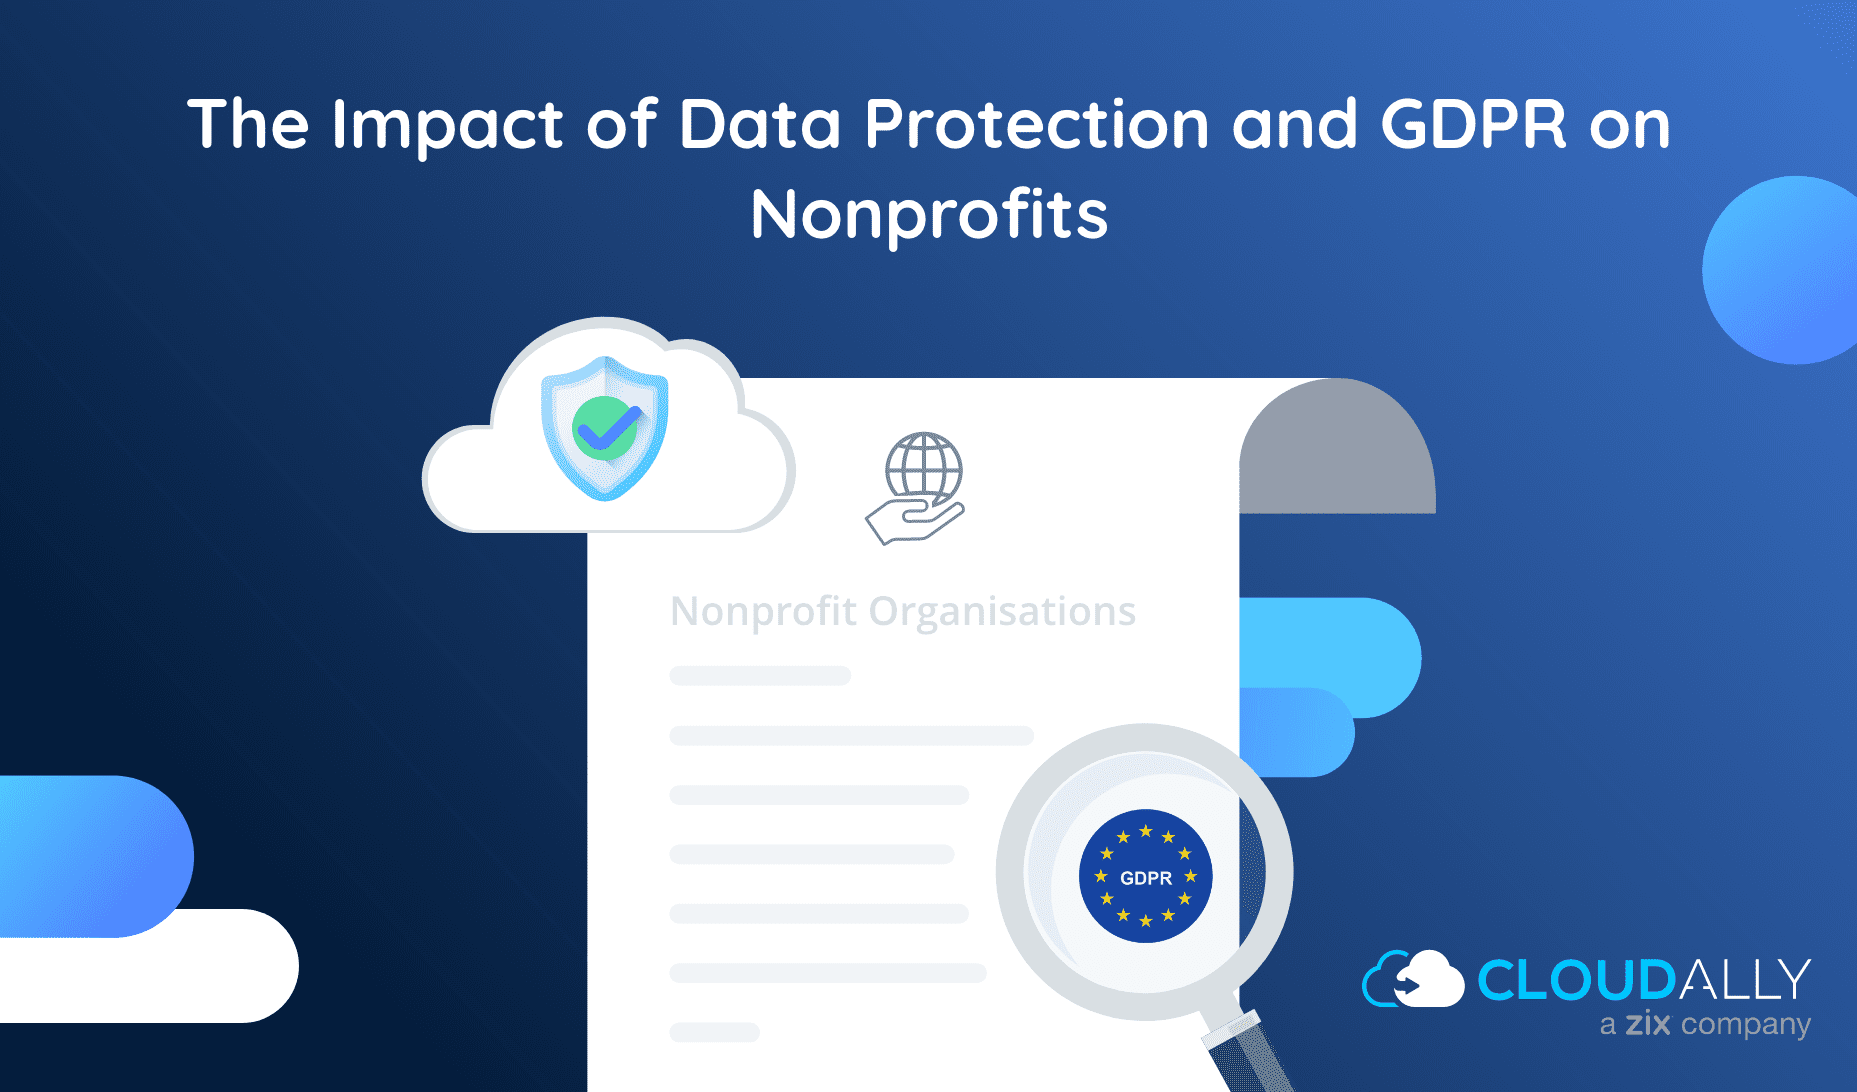 GDPR, Data Protection and Nonprofits